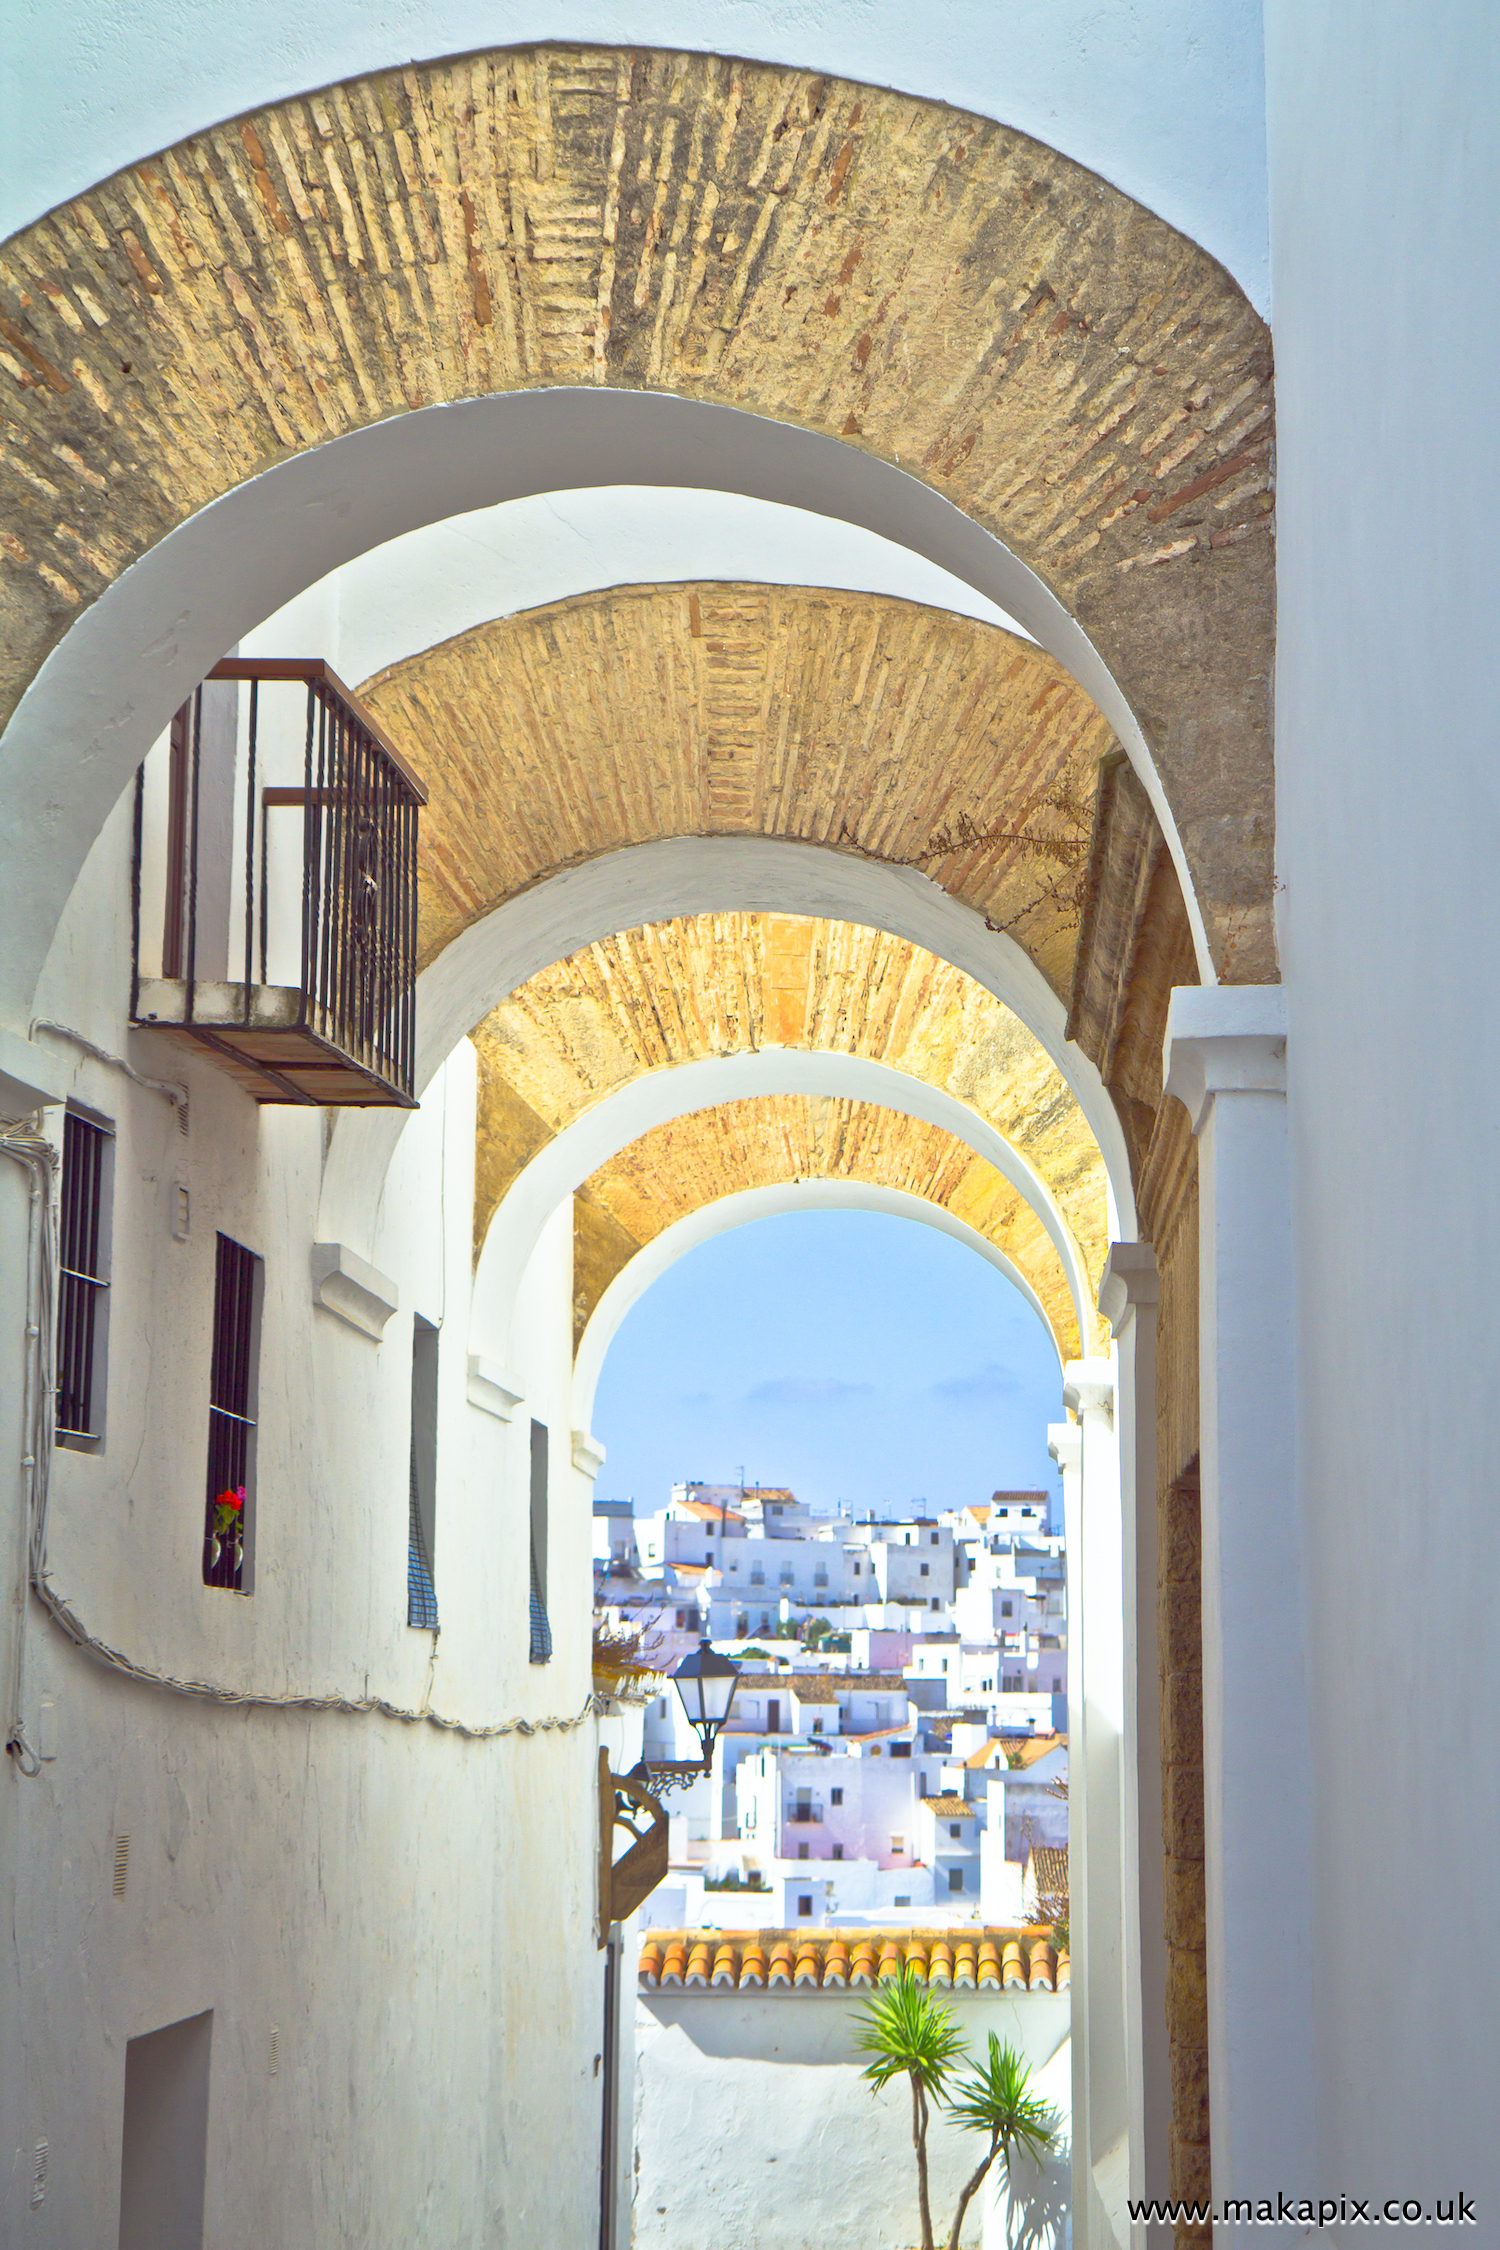 Vejer de la Frontera is a town in the province of Cádiz, Andalusia, Spain